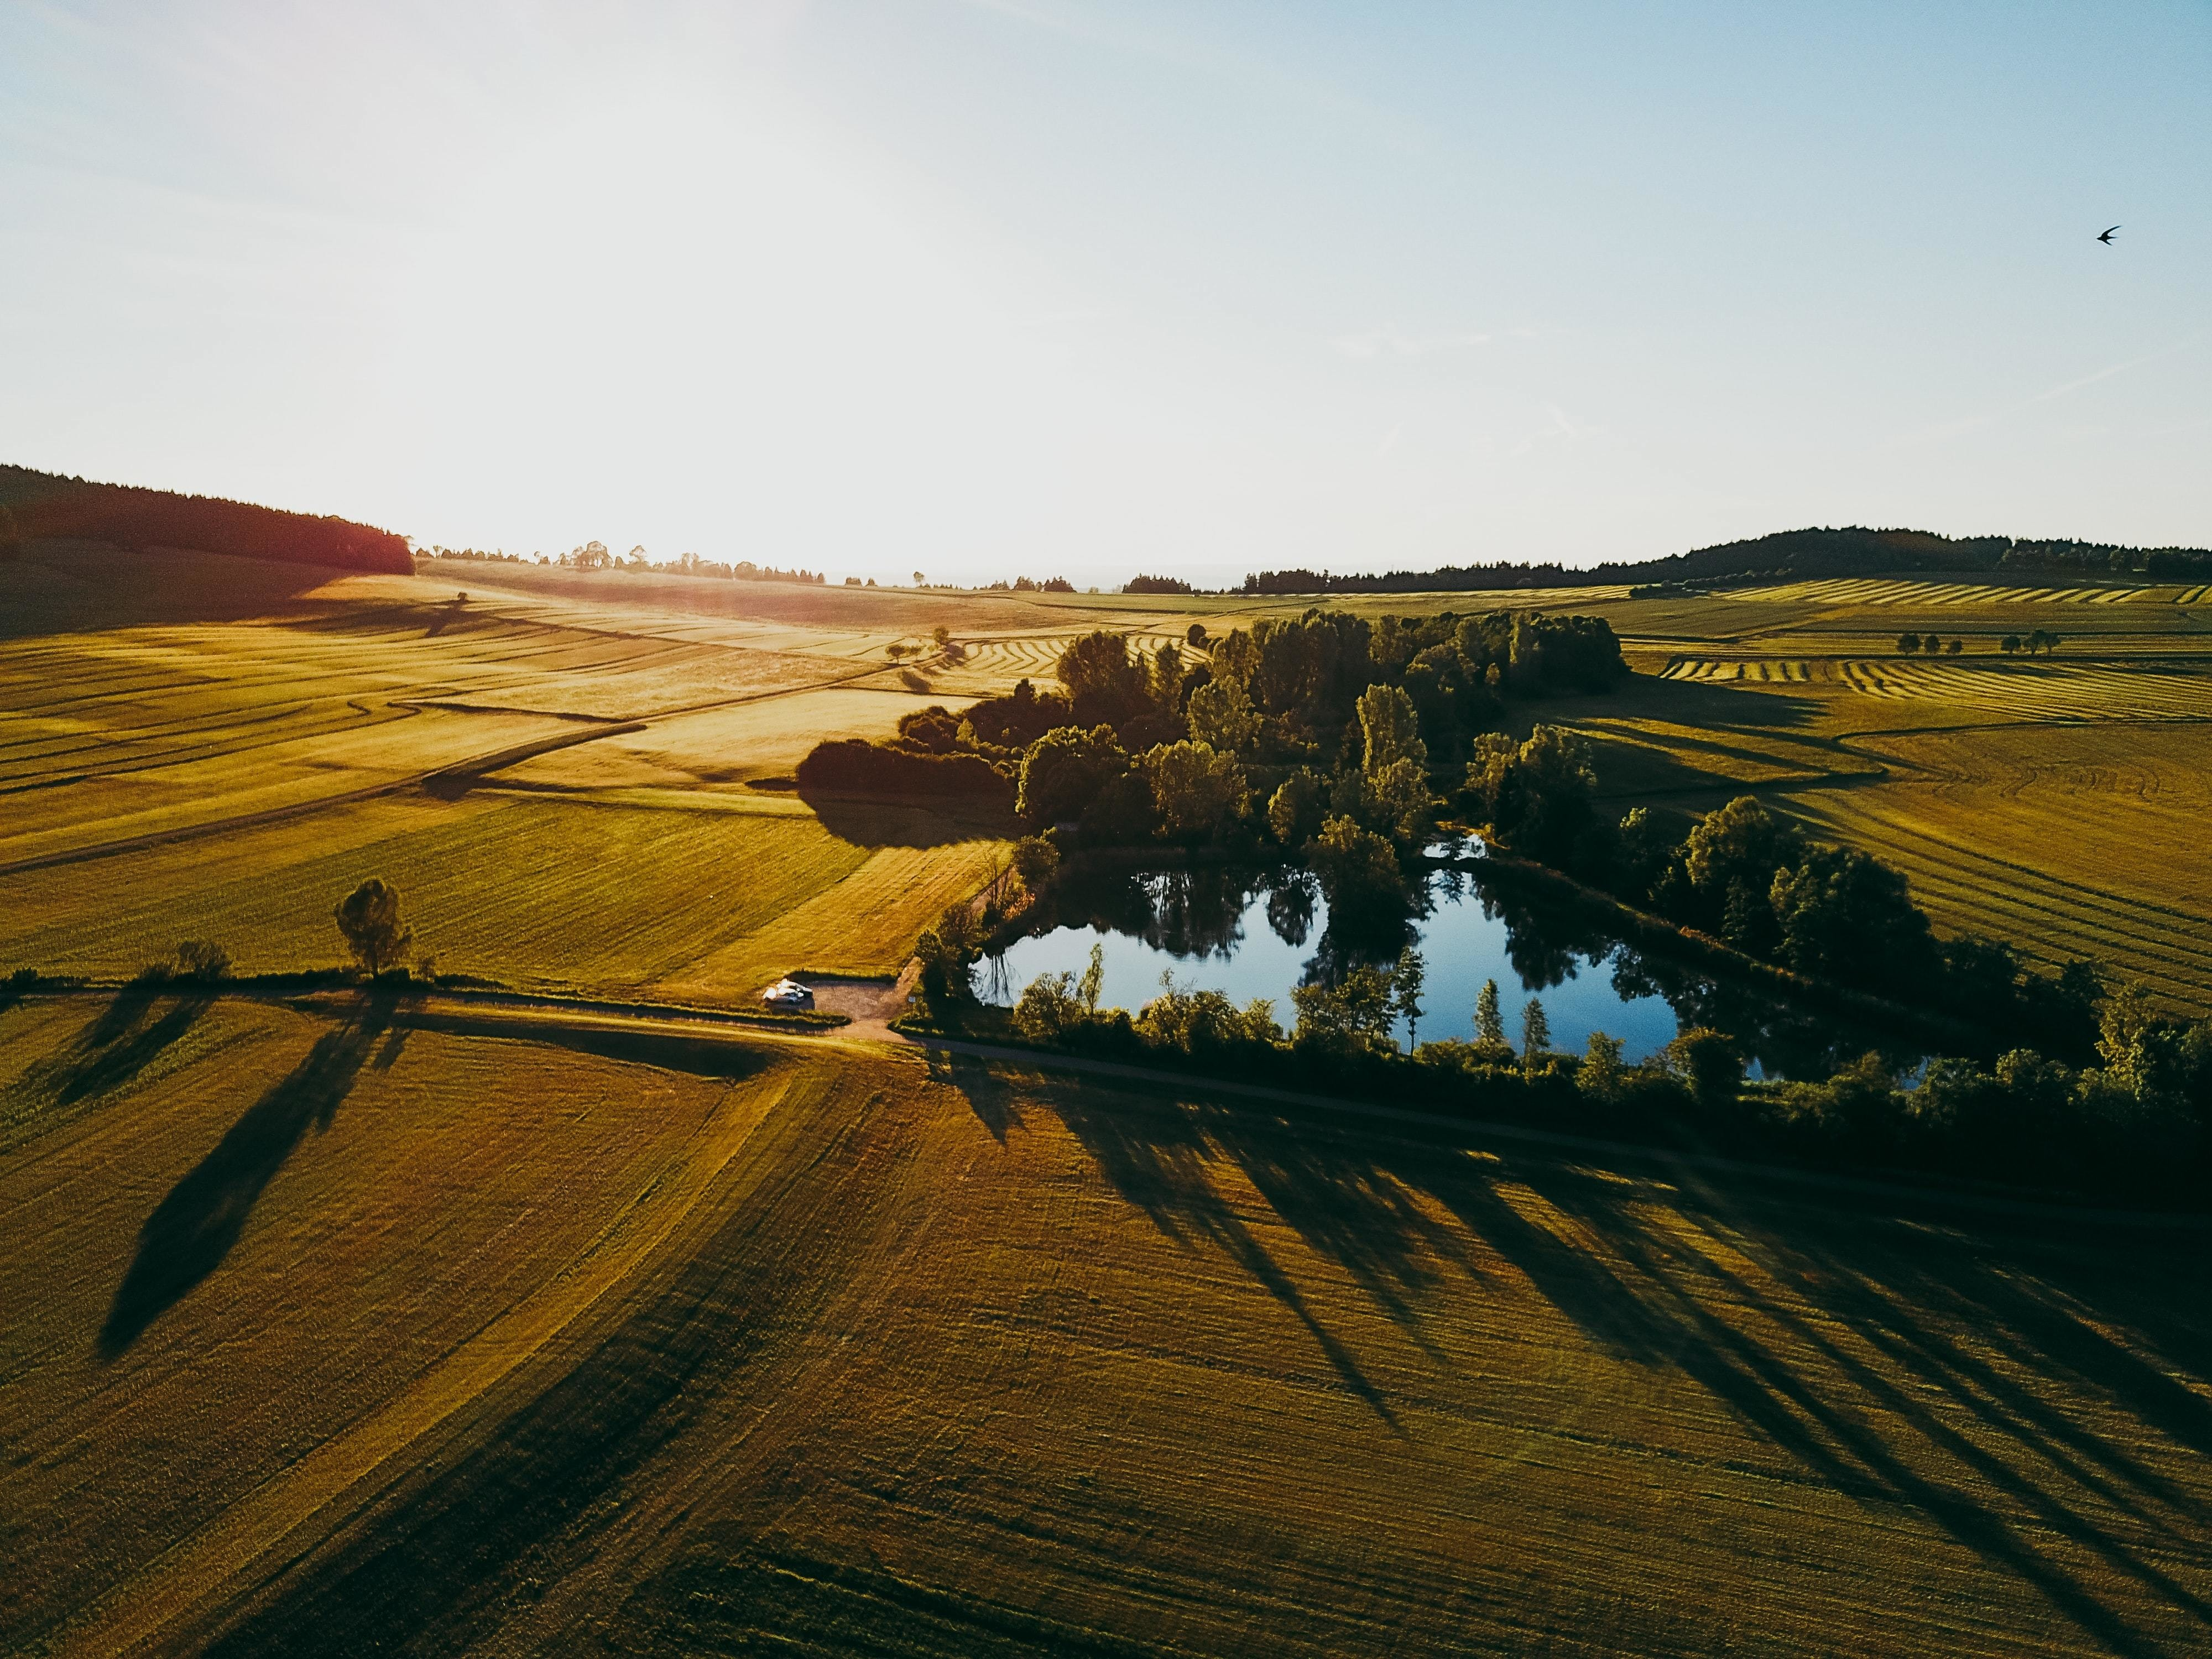 An image of a rolling field with trees surrounding a pond